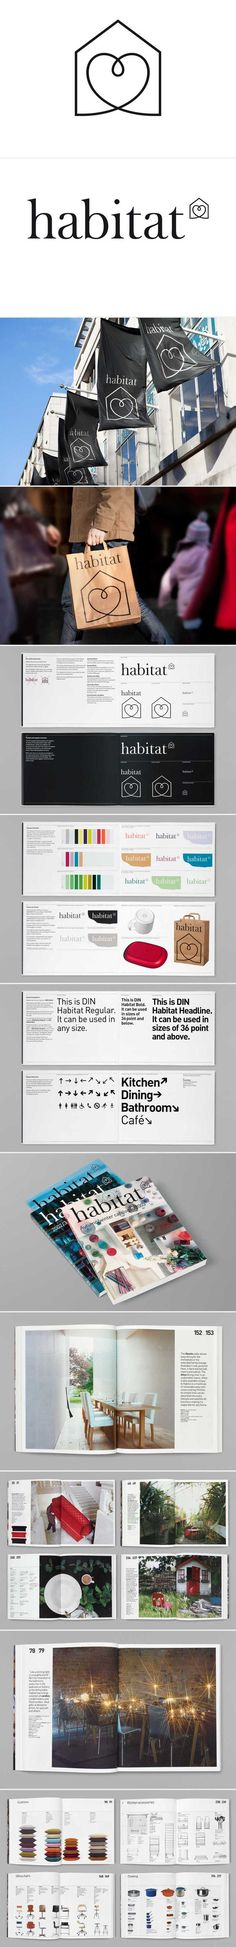 Brand, identity guidelines and collaterals